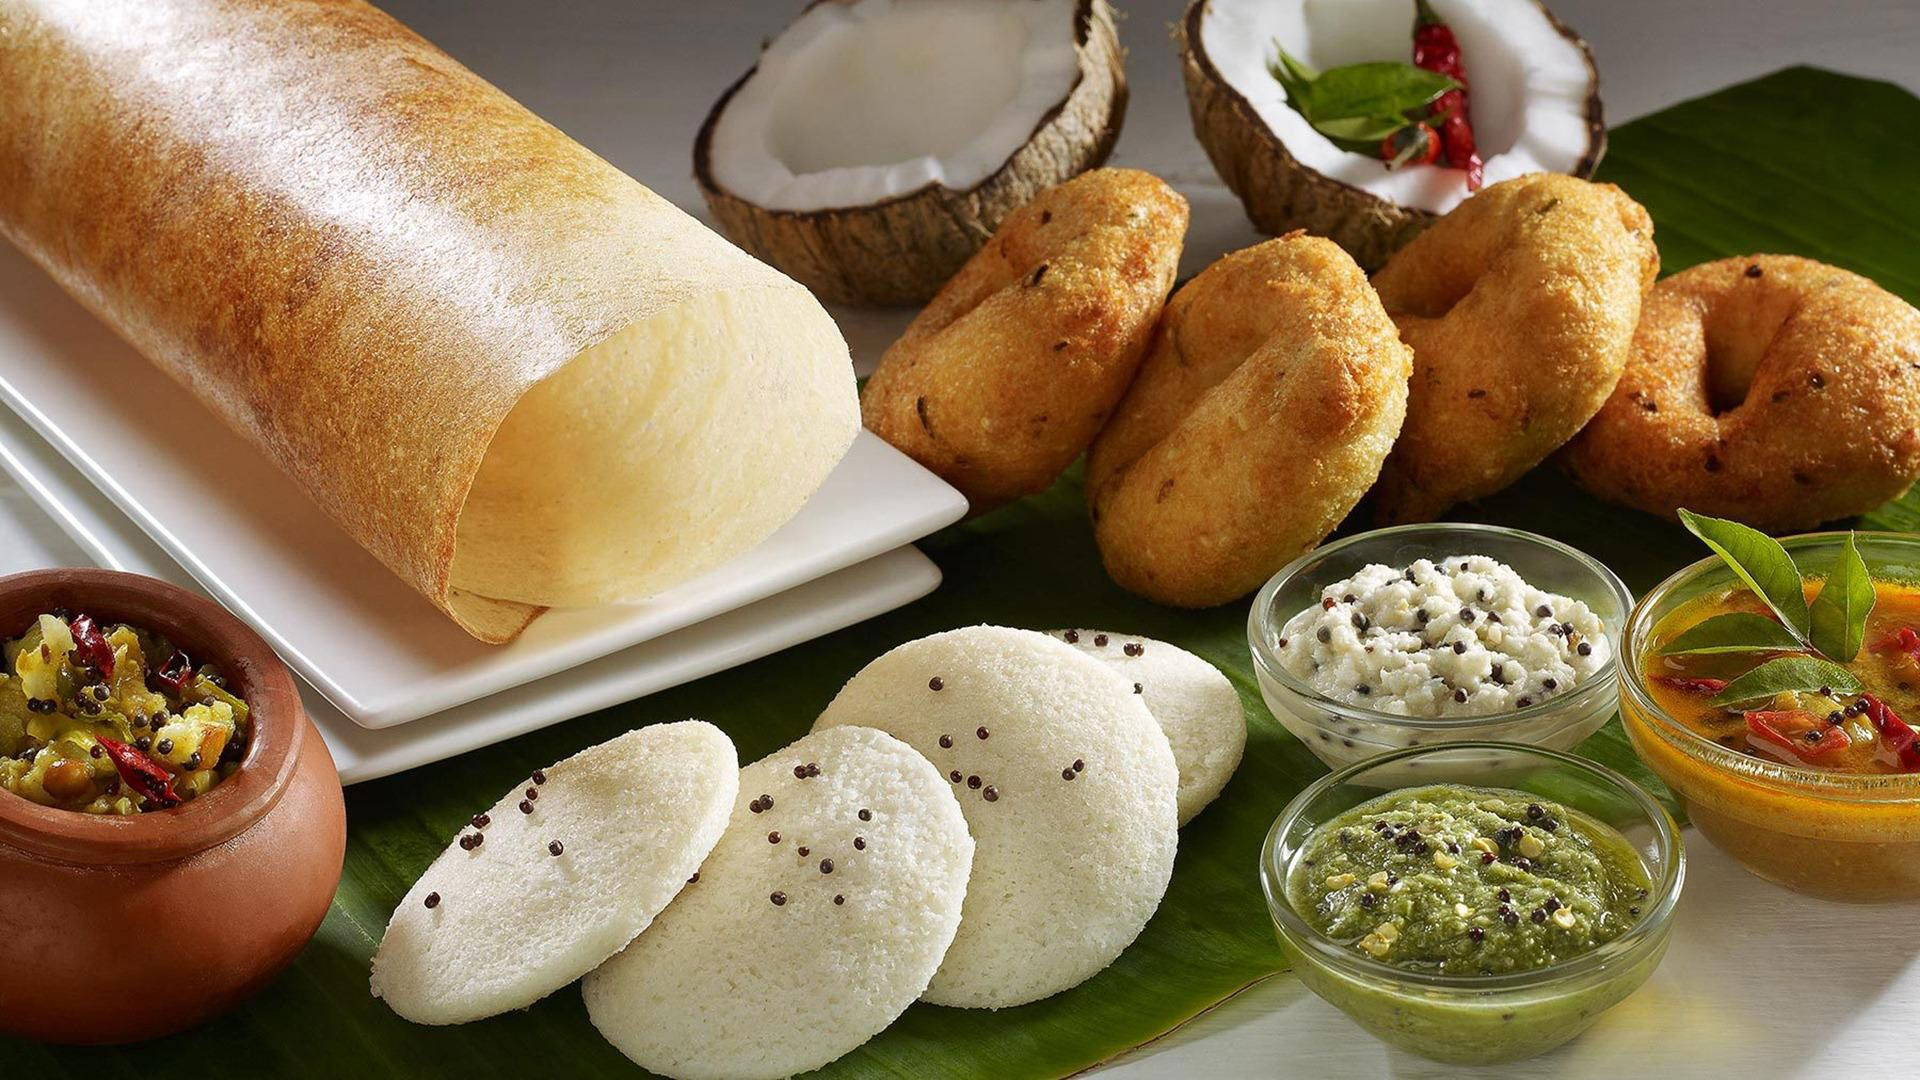 Hd Pics Photos Food Kerala Traditional Desktop Background